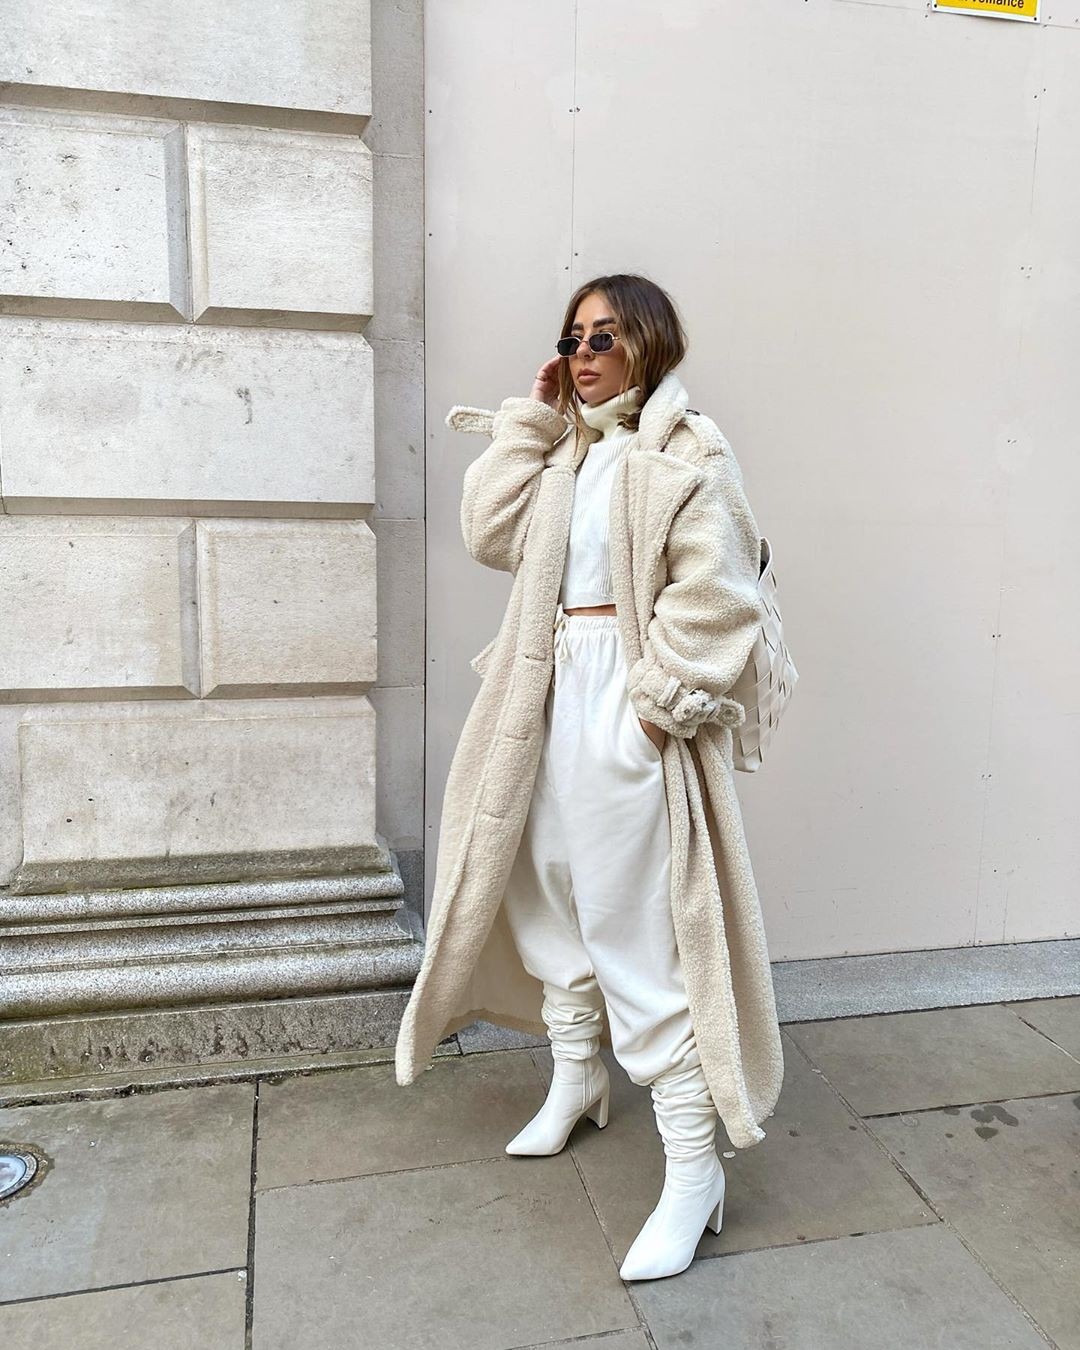 white classy outfit with trench coat, overcoat, coat